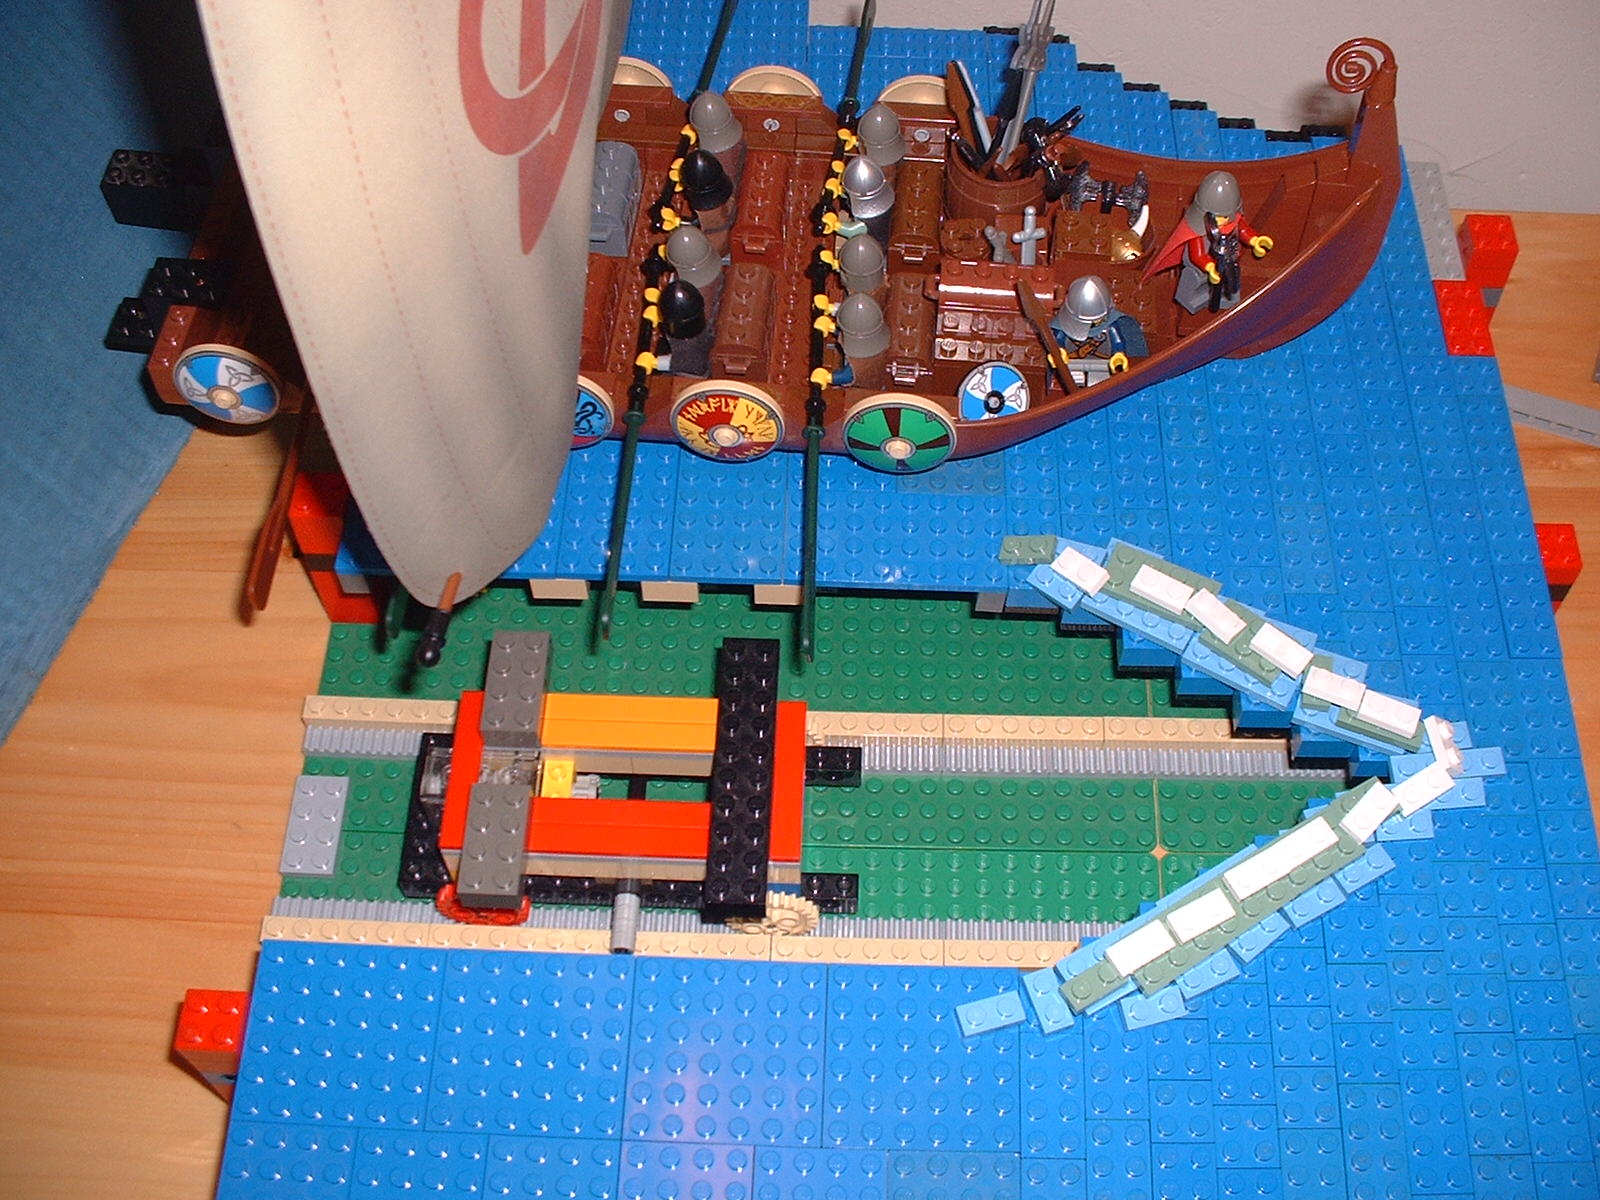 The viking ship was missing its back half and was attached to a rail. Water was a combination of sliding pieces and loose pieces on top